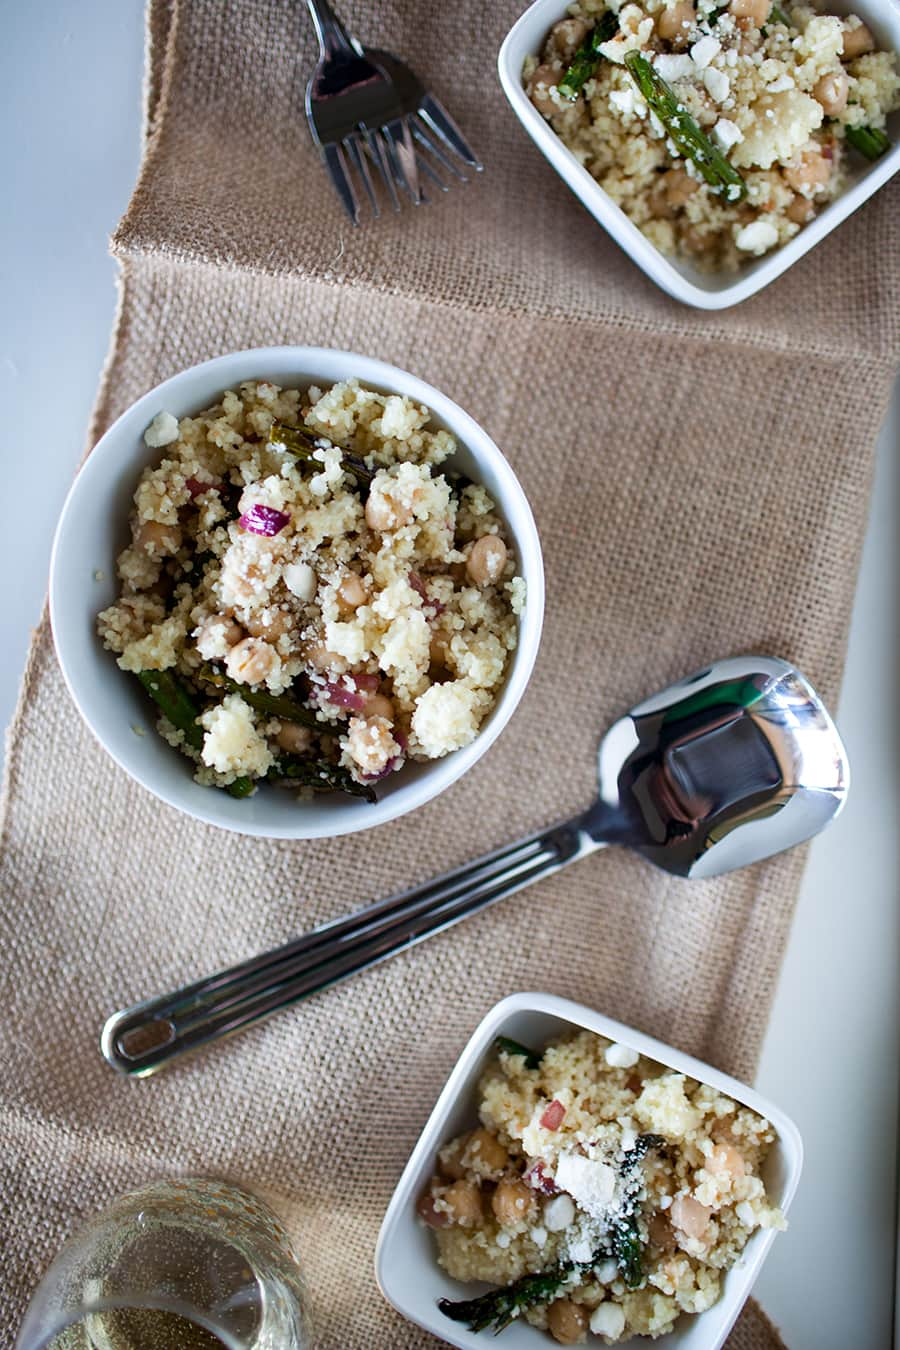 Asparagus Chickpea Mediterranean Couscous Salad from A Joyfully Mad Kitchen